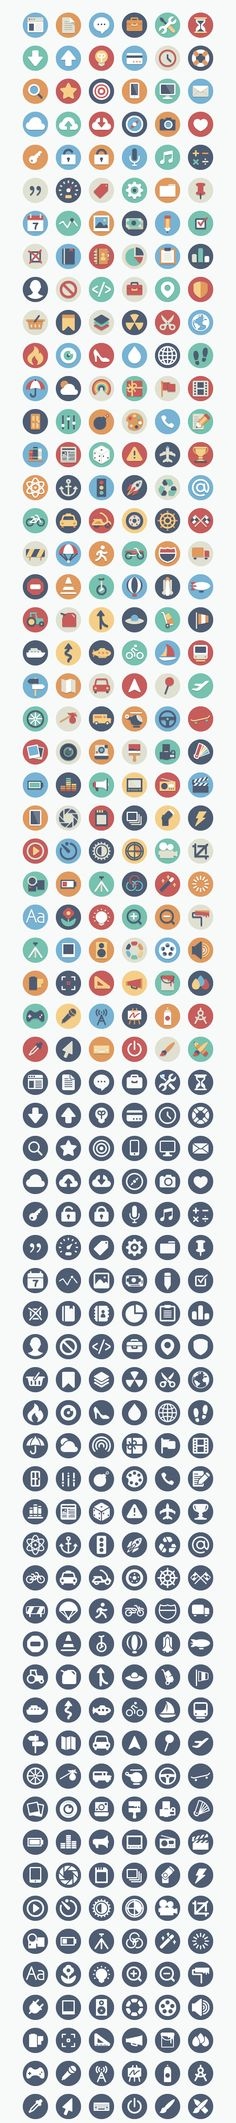 Beautiful flat icons by Elegant Themes // 192 piece set -- all yours, for free! // two versions: full color & single color, for a total of 384 variations. This download includes .ai, .eps, .pdf, and .png